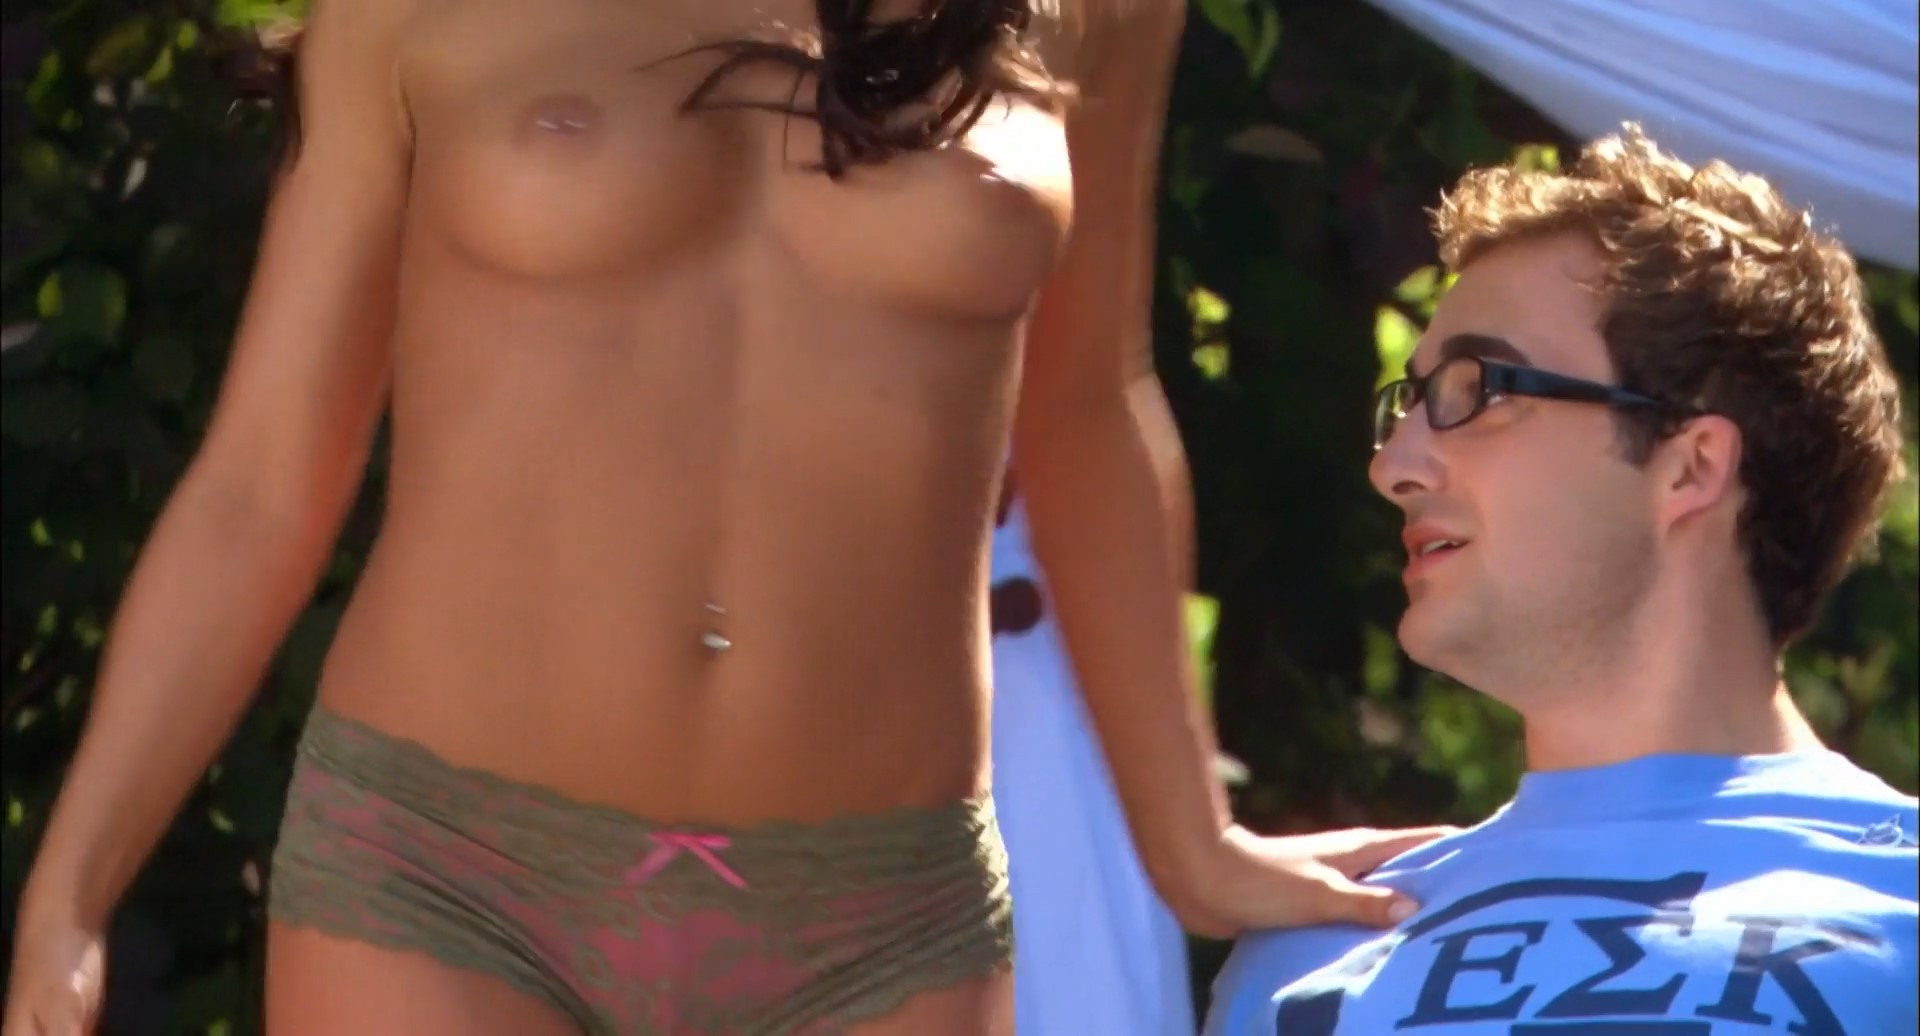 American Pie Nackt movie nudity » page 271 » nudecelebvideo - your box of nude